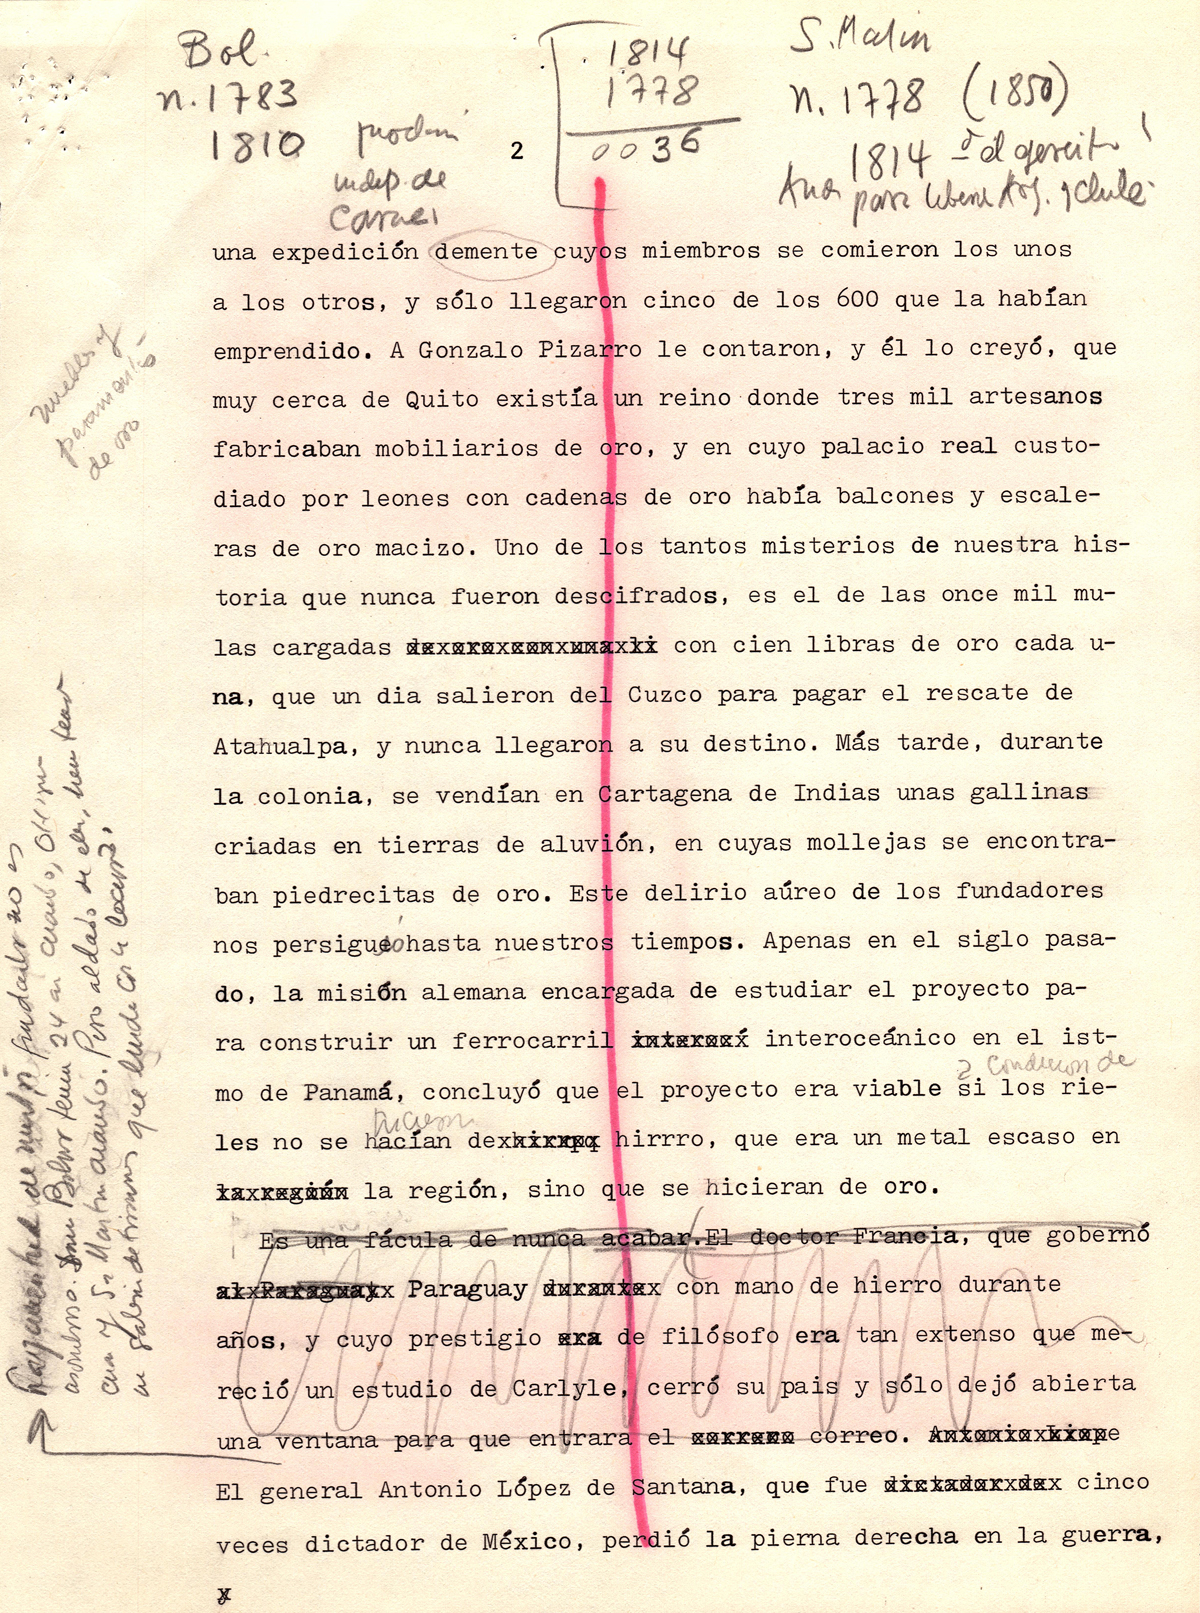 Gabriel García Márquez's first draft of his Nobel Prize acceptance speech.